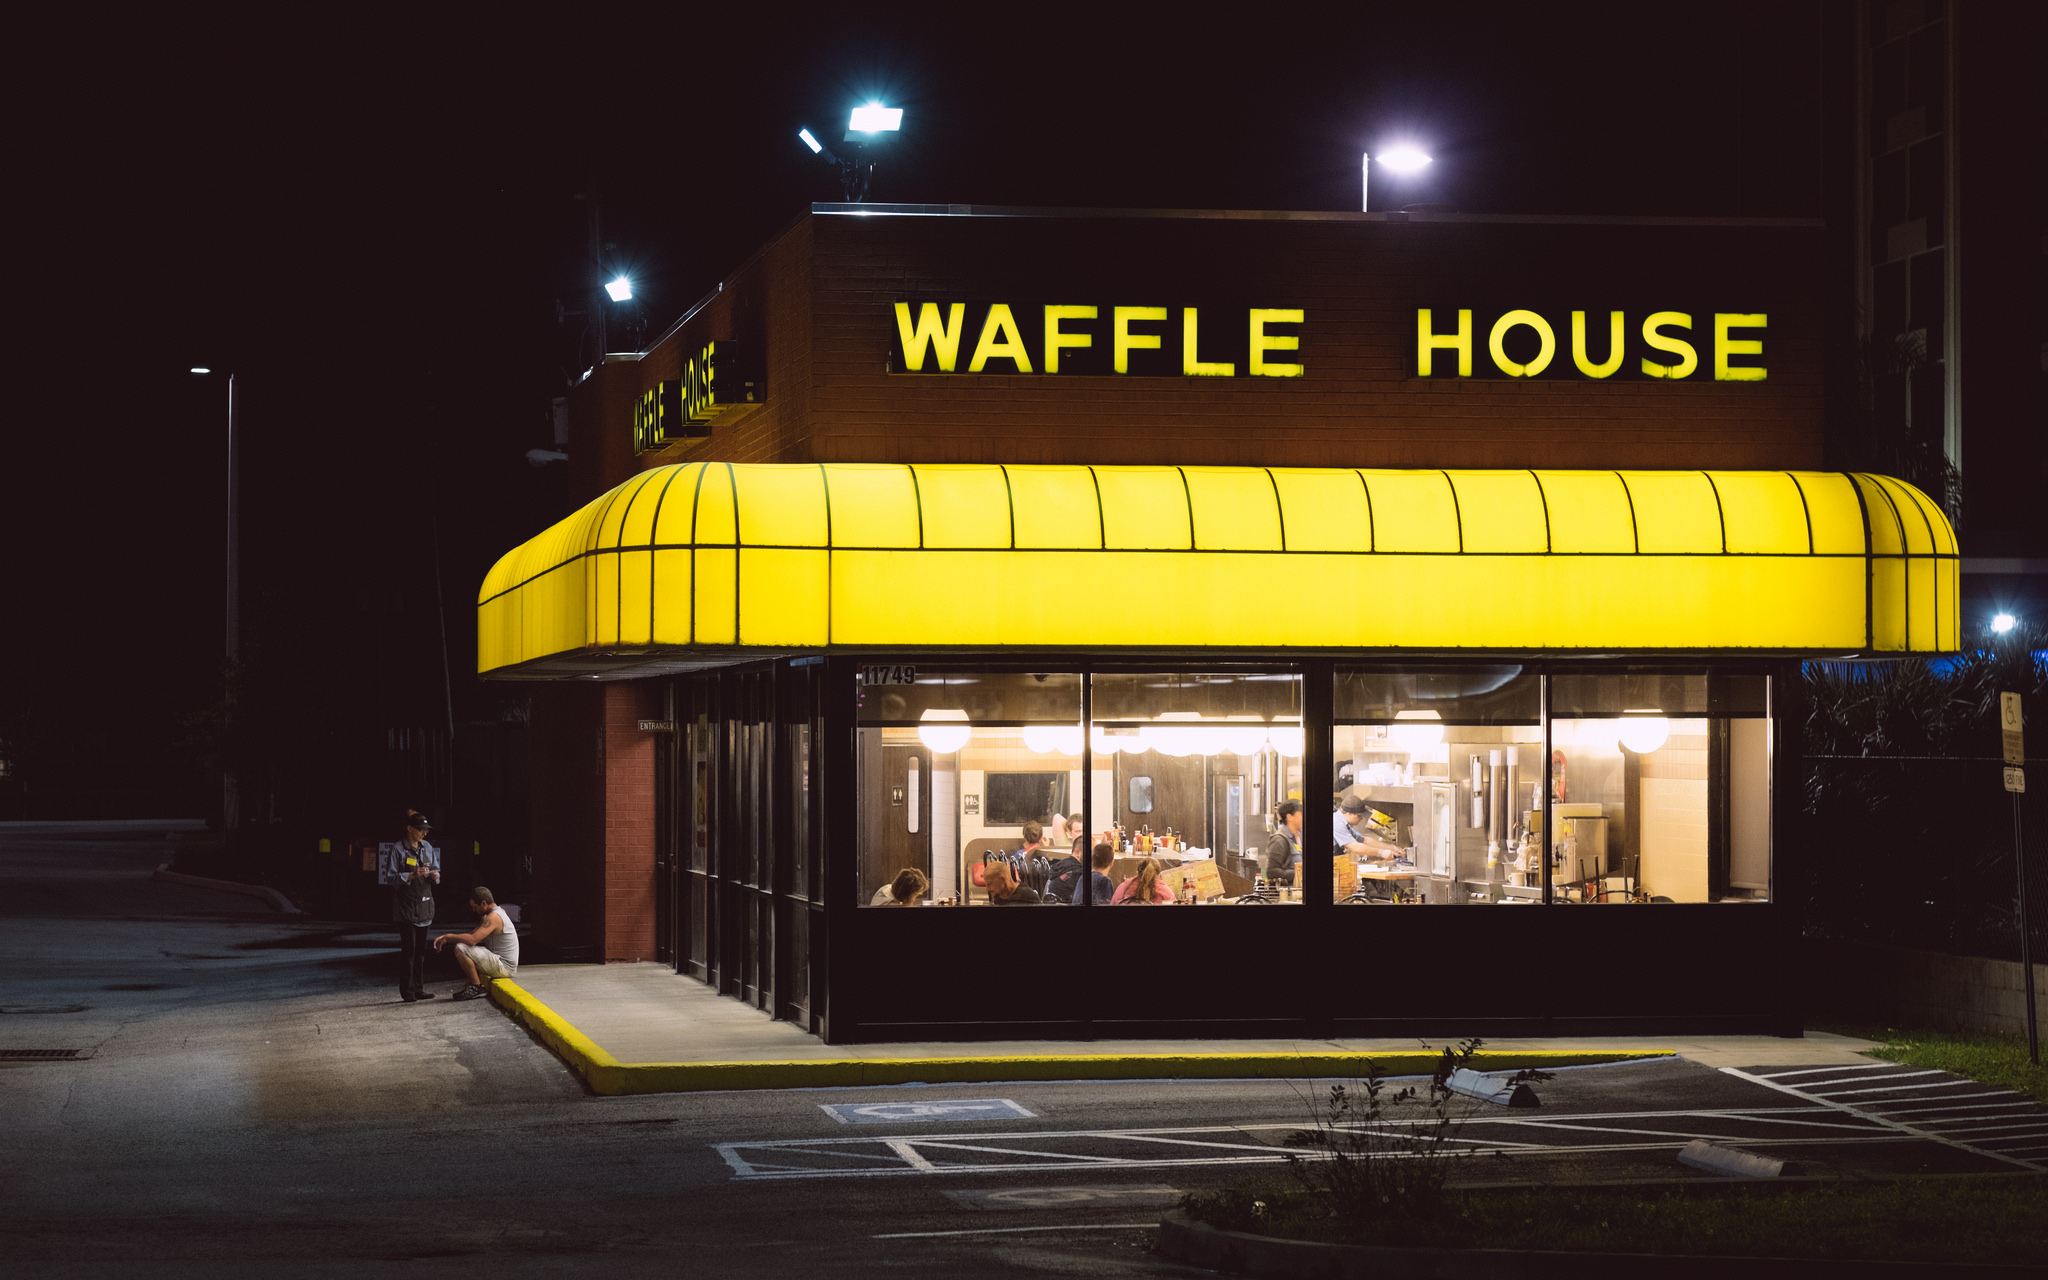 Florida Mom Abandons 3 Kids In Waffle House To Go Drinking